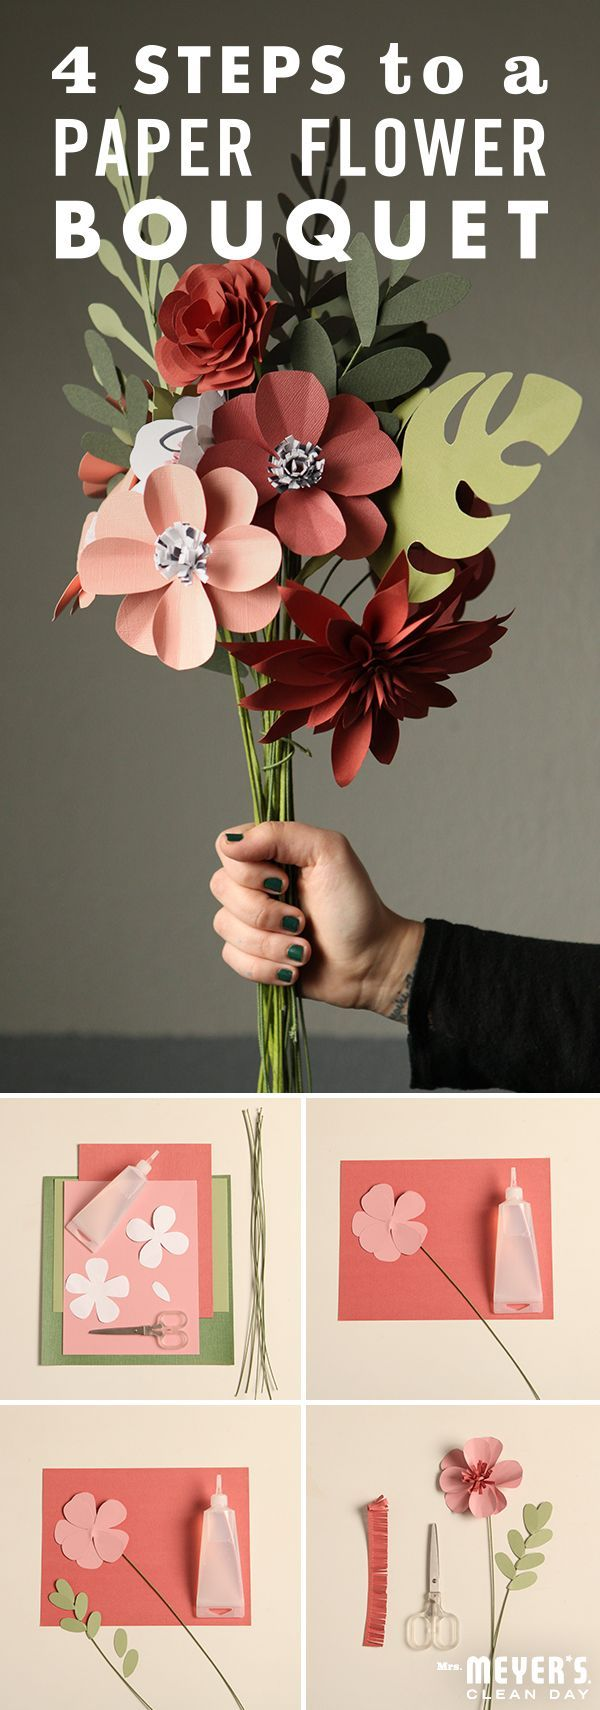 Paper flower bouquet pinterest flower bouquet diy draw flowers brighten up any room with this paper flower bouquet diy to start draw flower and leaf shapes on craft paper no need to worry if they dont look perfect izmirmasajfo